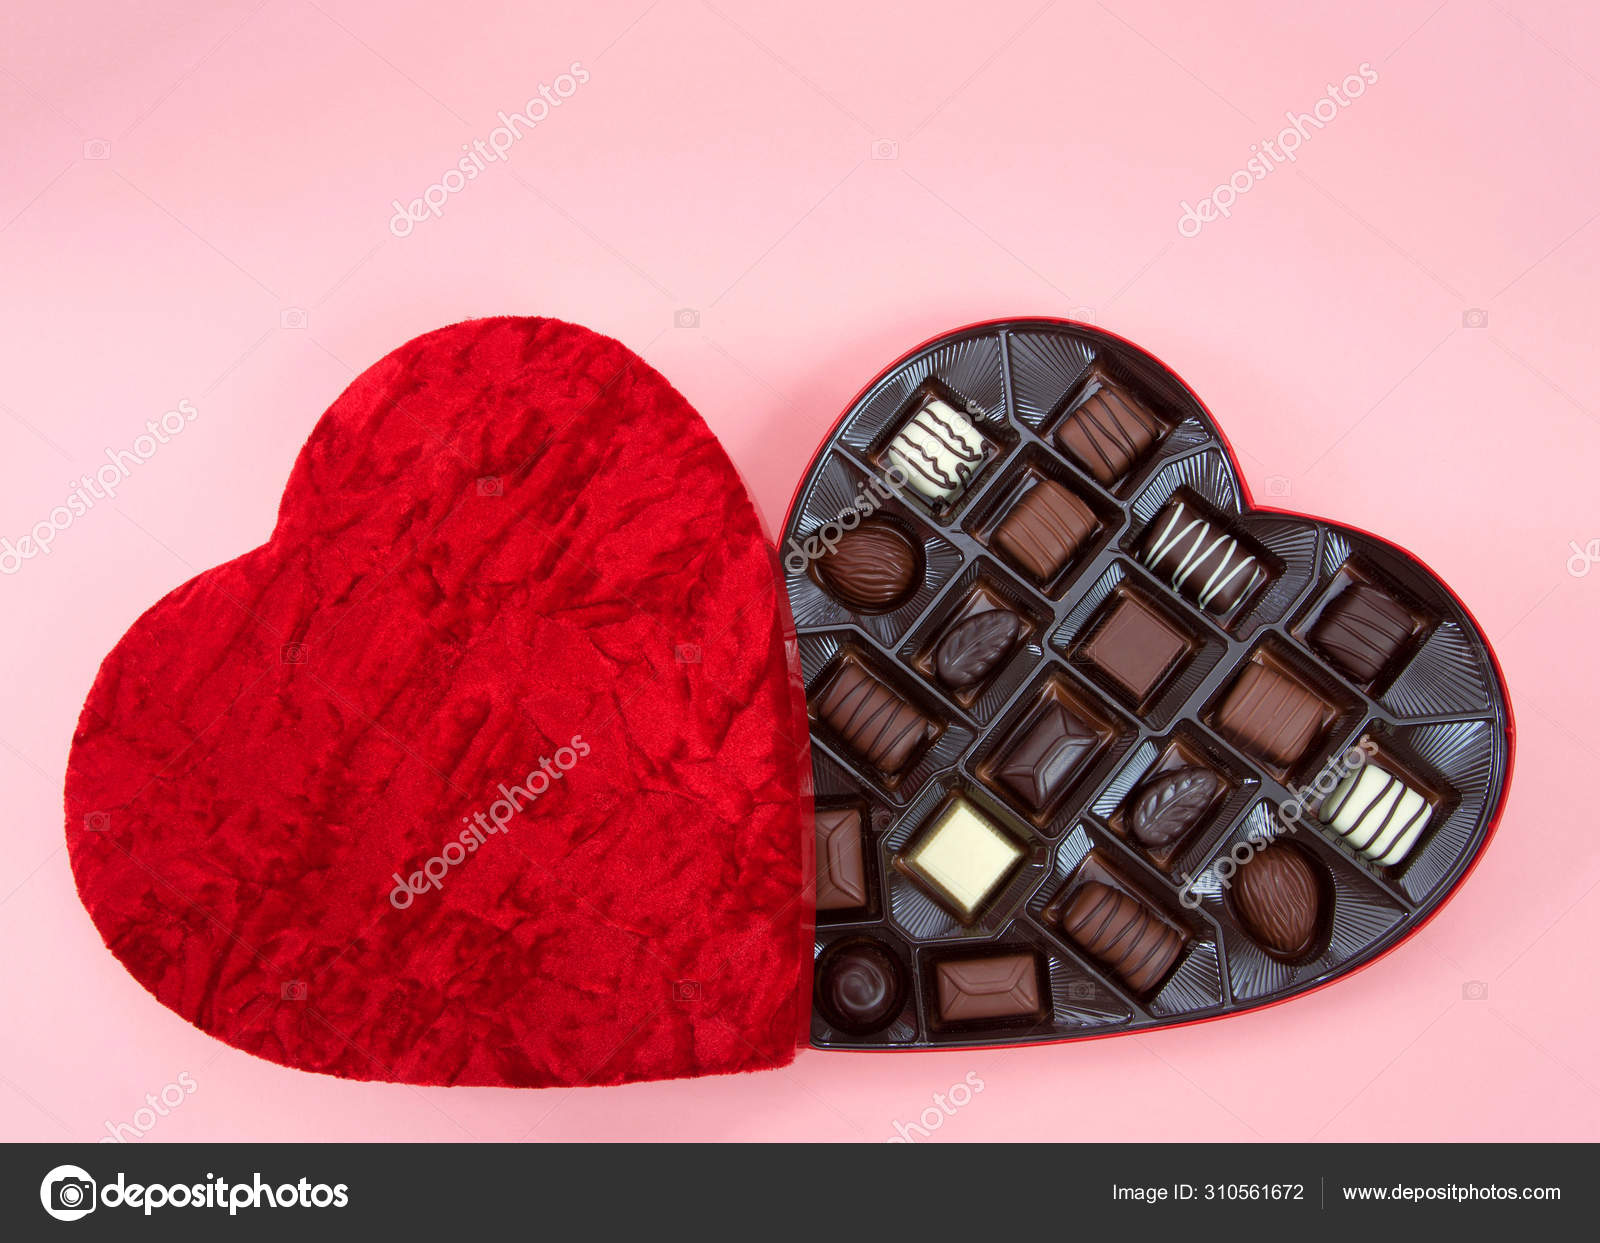 Heart Shaped Box Chocolate Candies Pink Background Popular Gift Valentine Stock Photo C Sheilaf2002 310561672